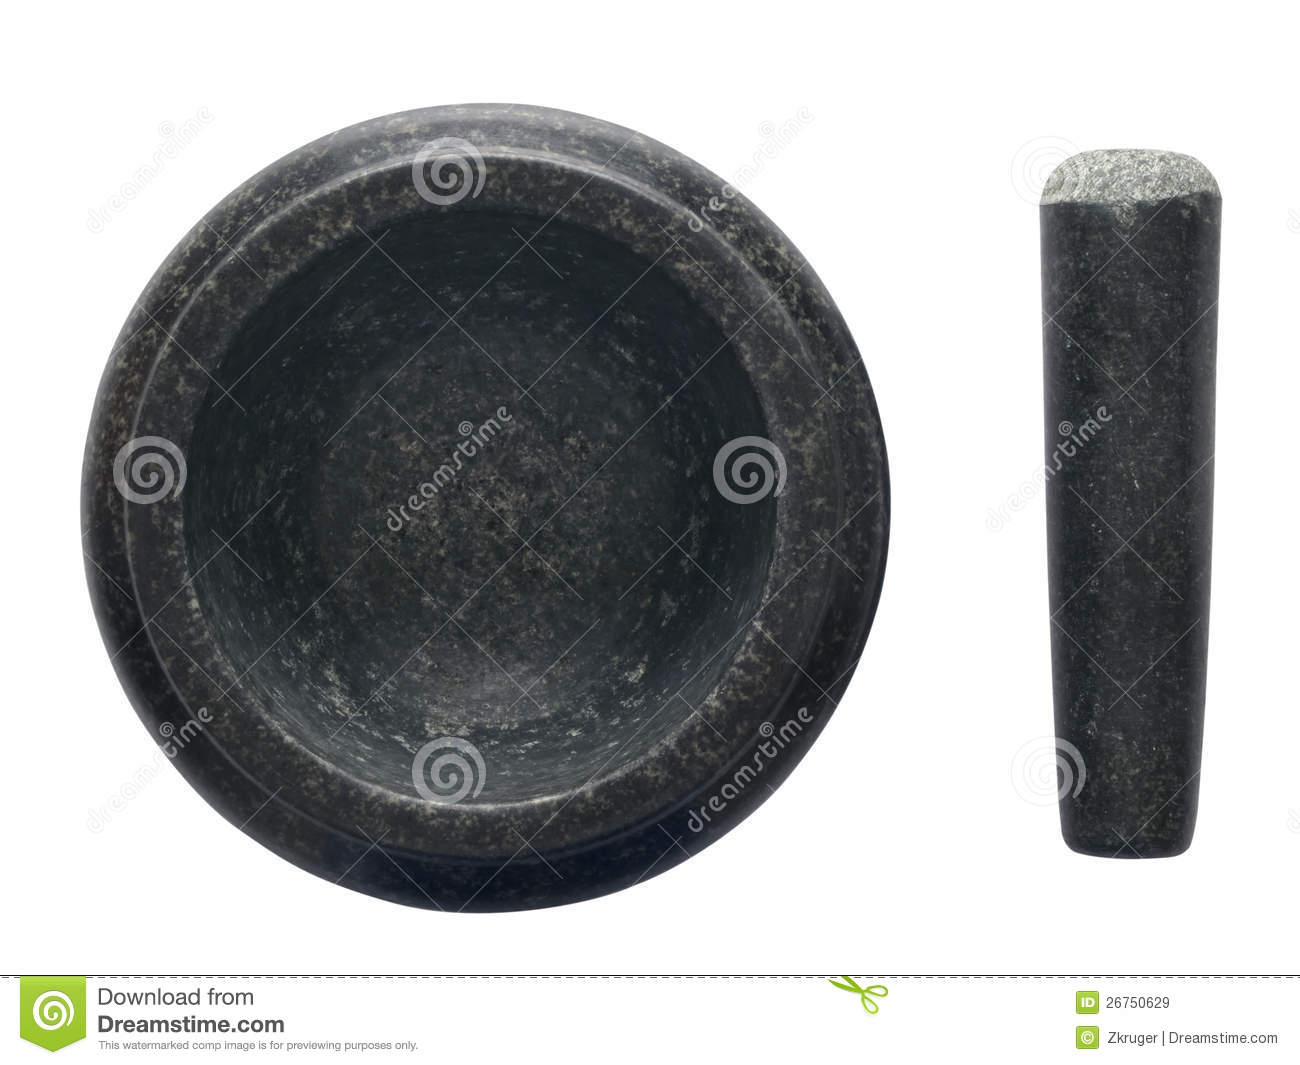 Think, asian mortar and pestle pity, that